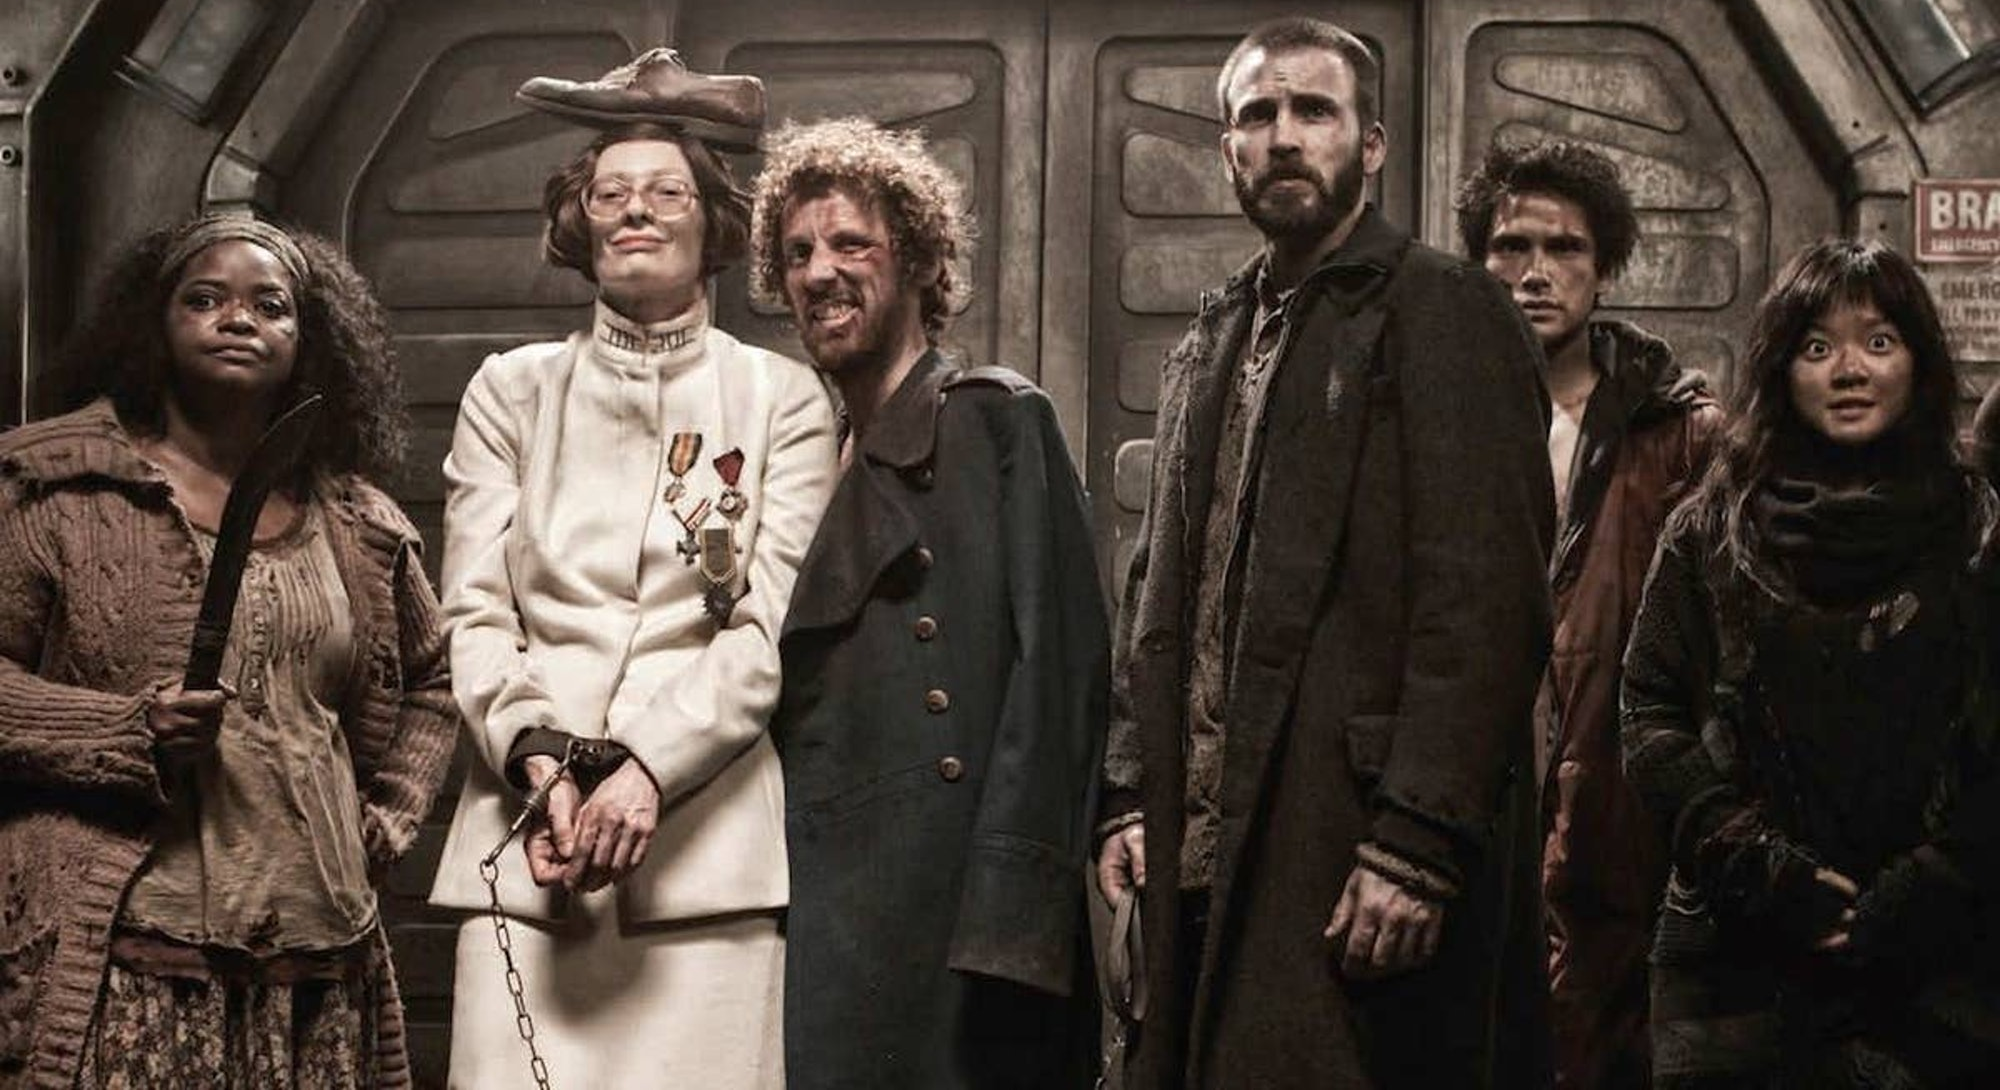 cast of snowpiercer lined up on train